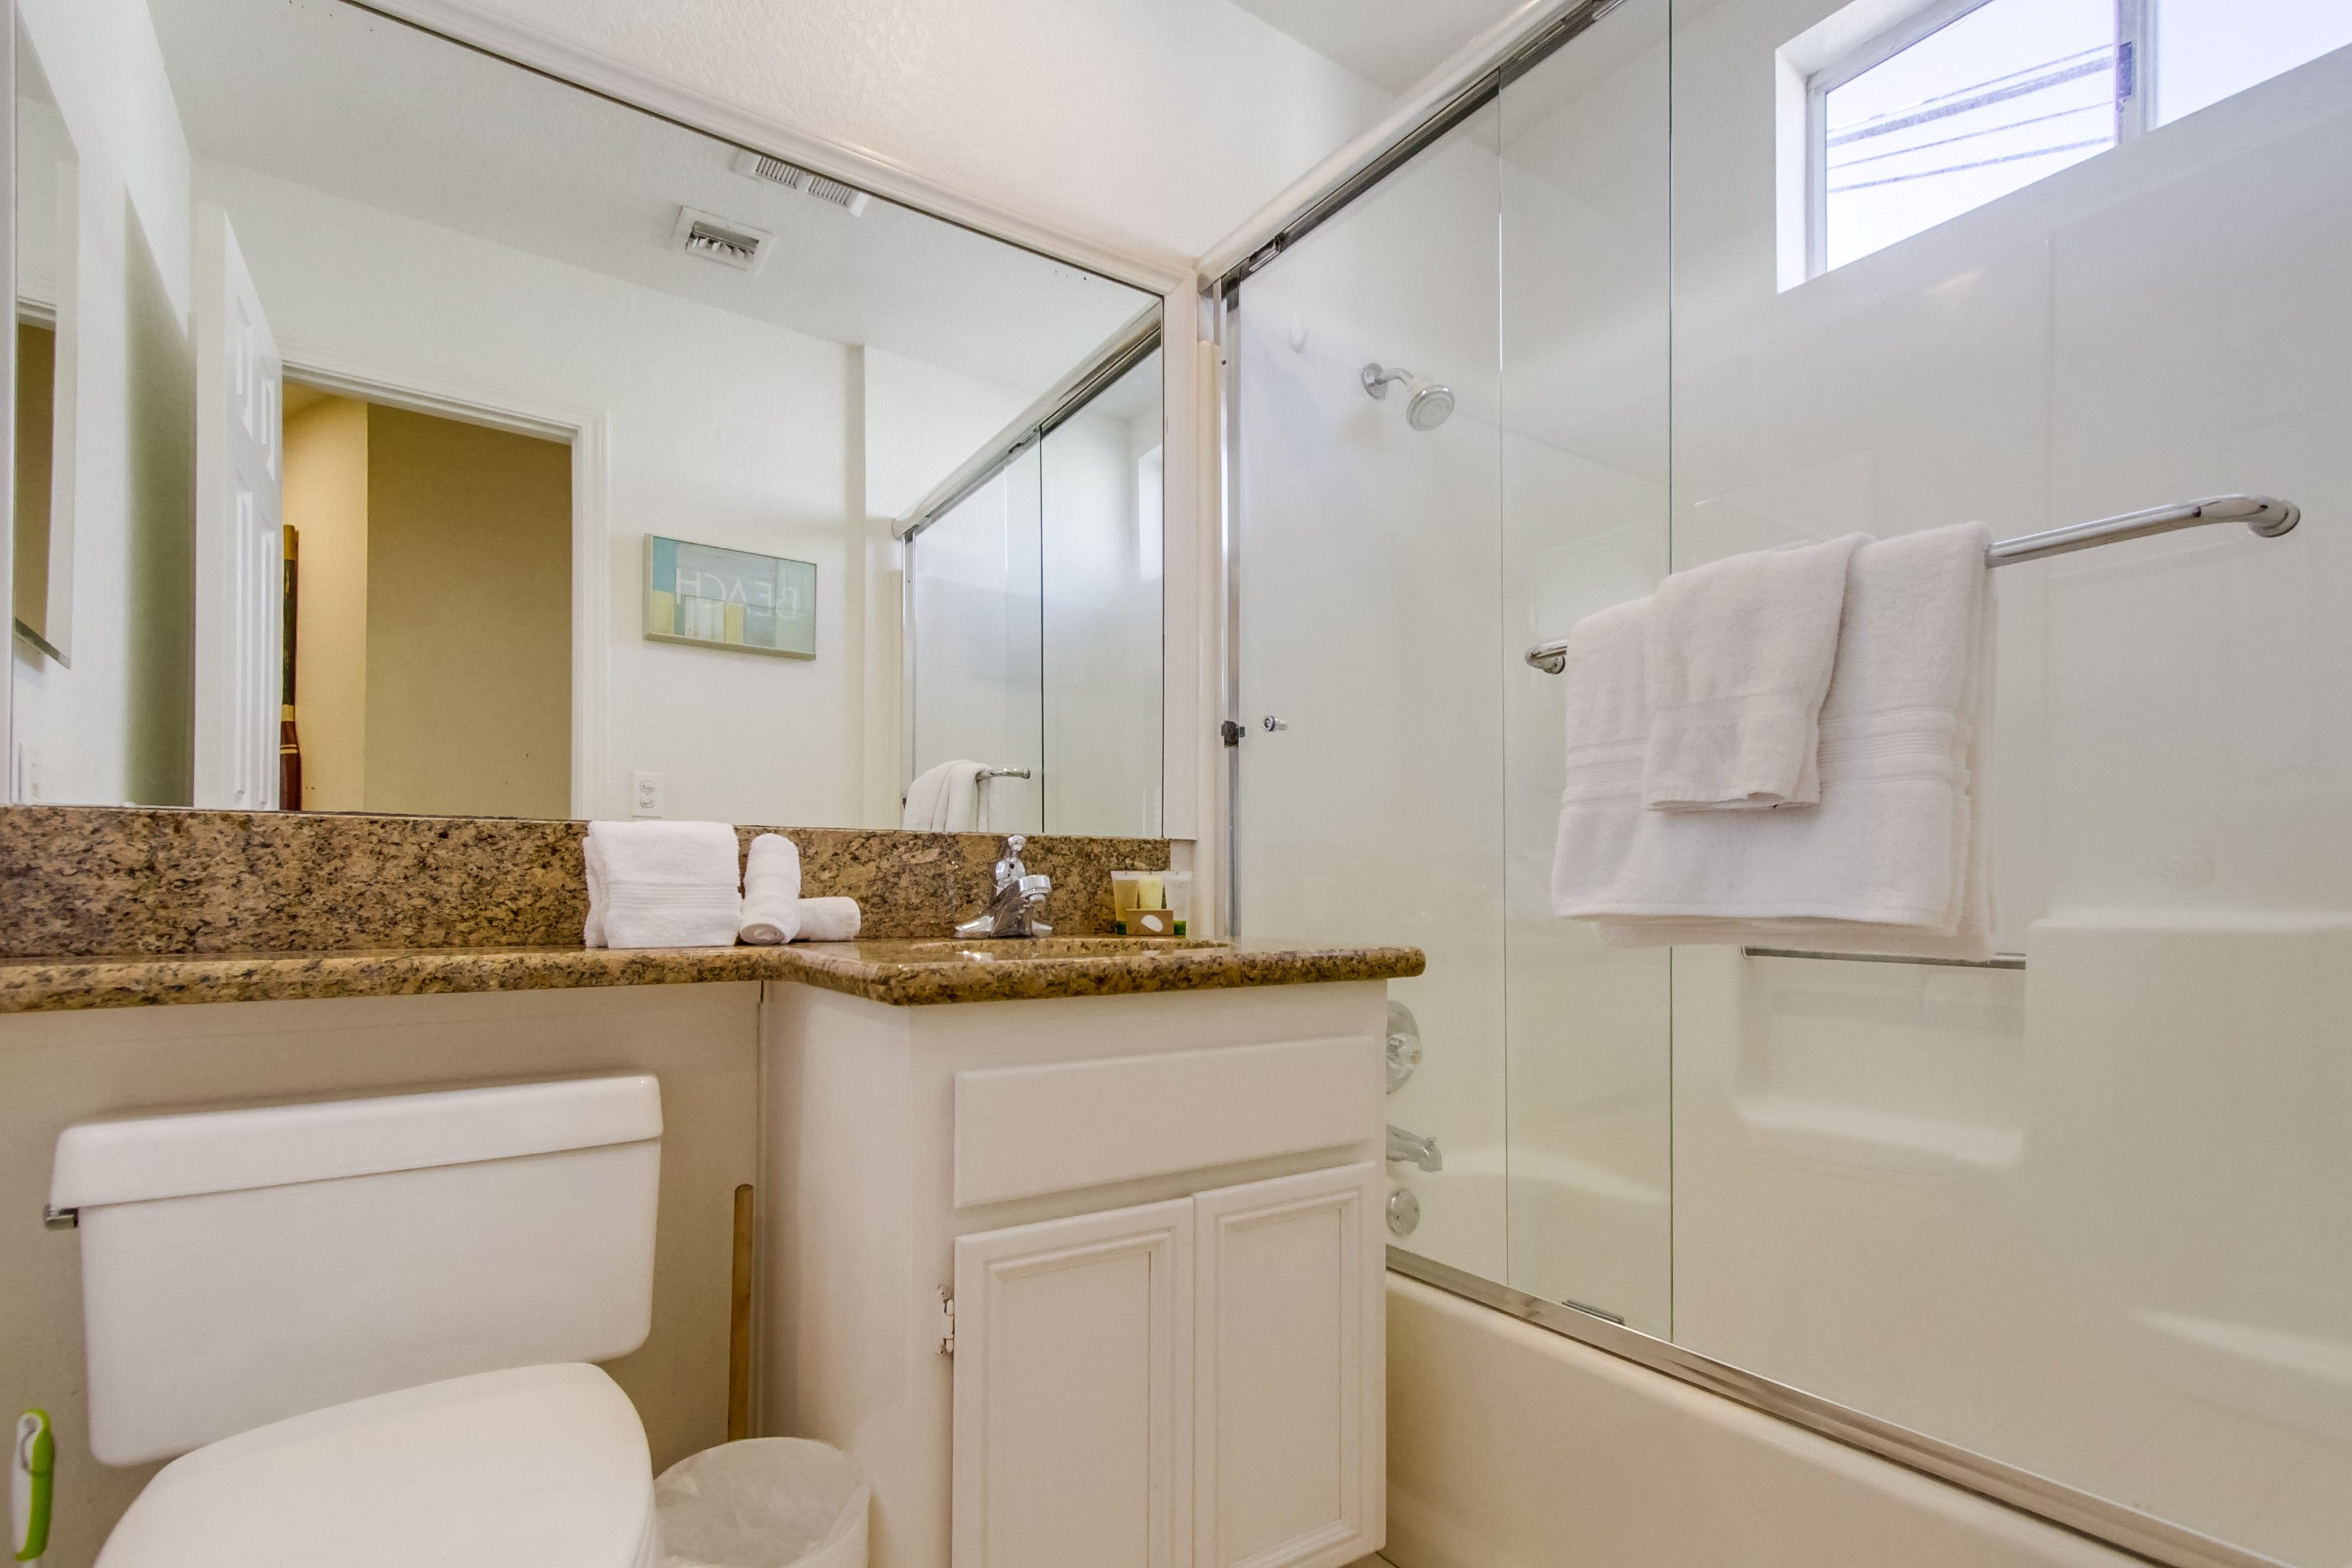 Bathroom with Shower-Tub Combo, Toilet, and Single Sink Vanity.